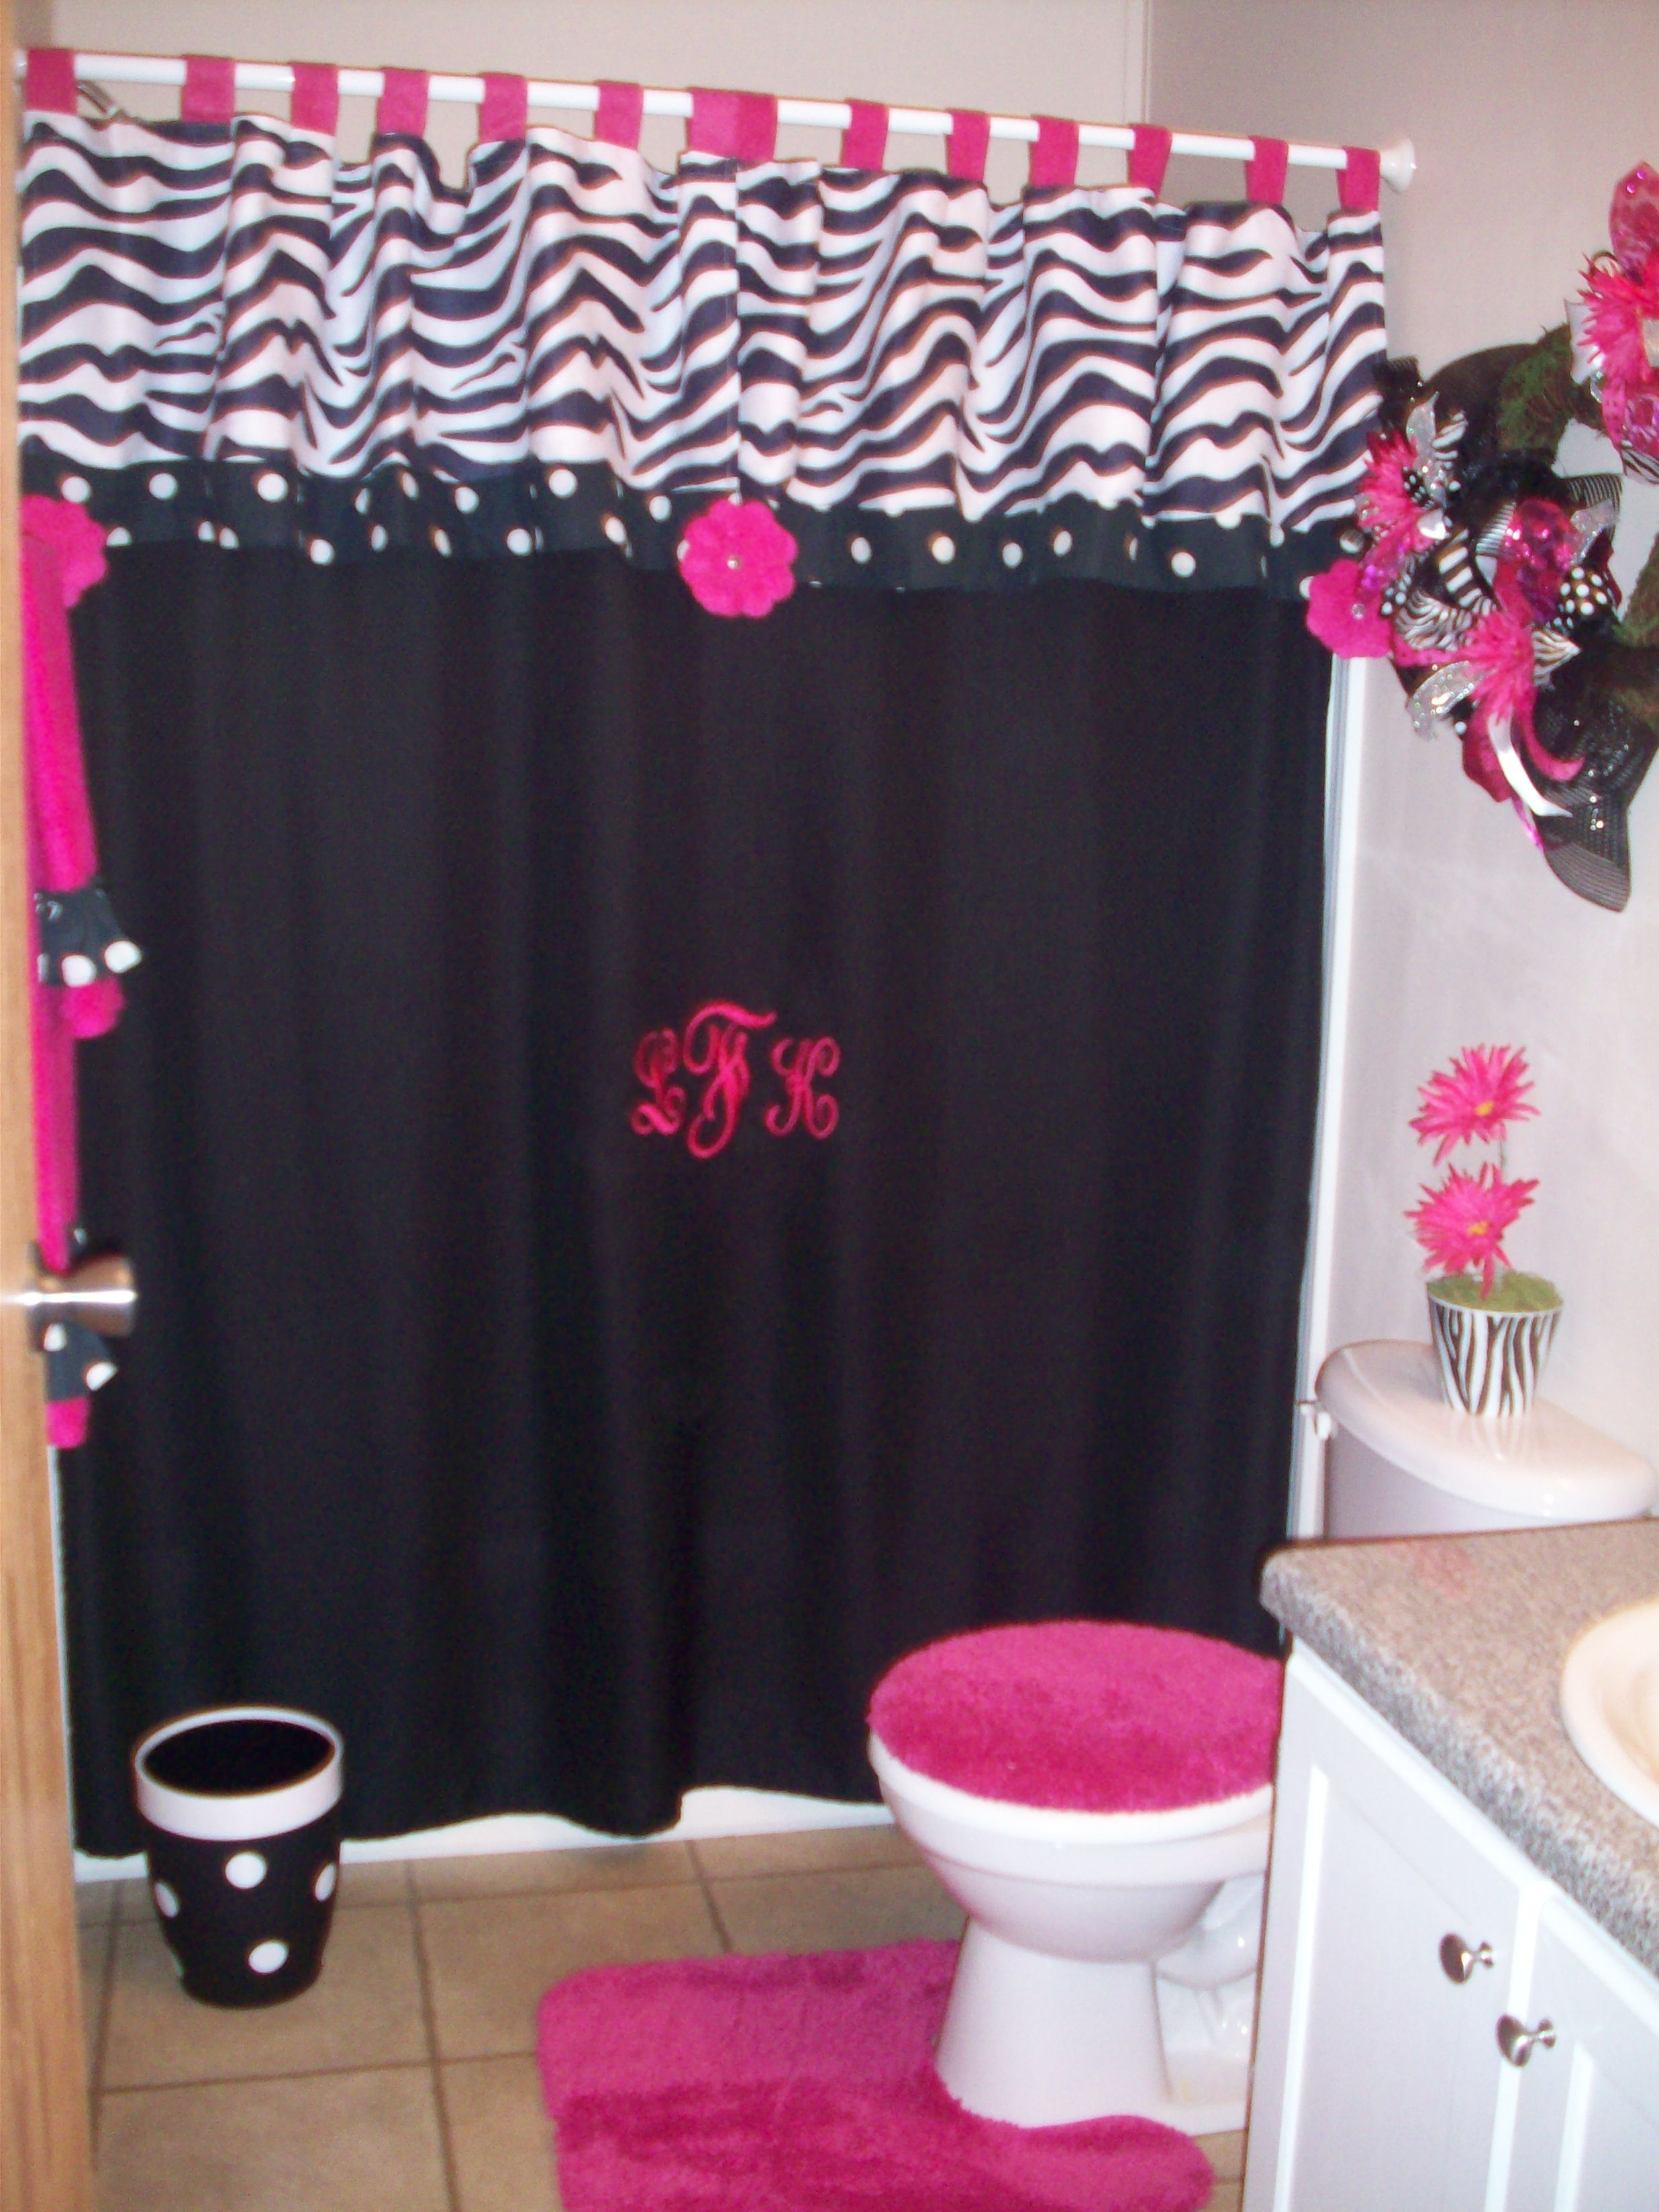 A Little Too Much For Me But Would Tie In Perfectly For The Girlies Minnie Mouse Zebra Bathroom Theme Zebra Bathroom Zebra Print Bathroom Girls Bathroom Design Pink zebra bathroom decor